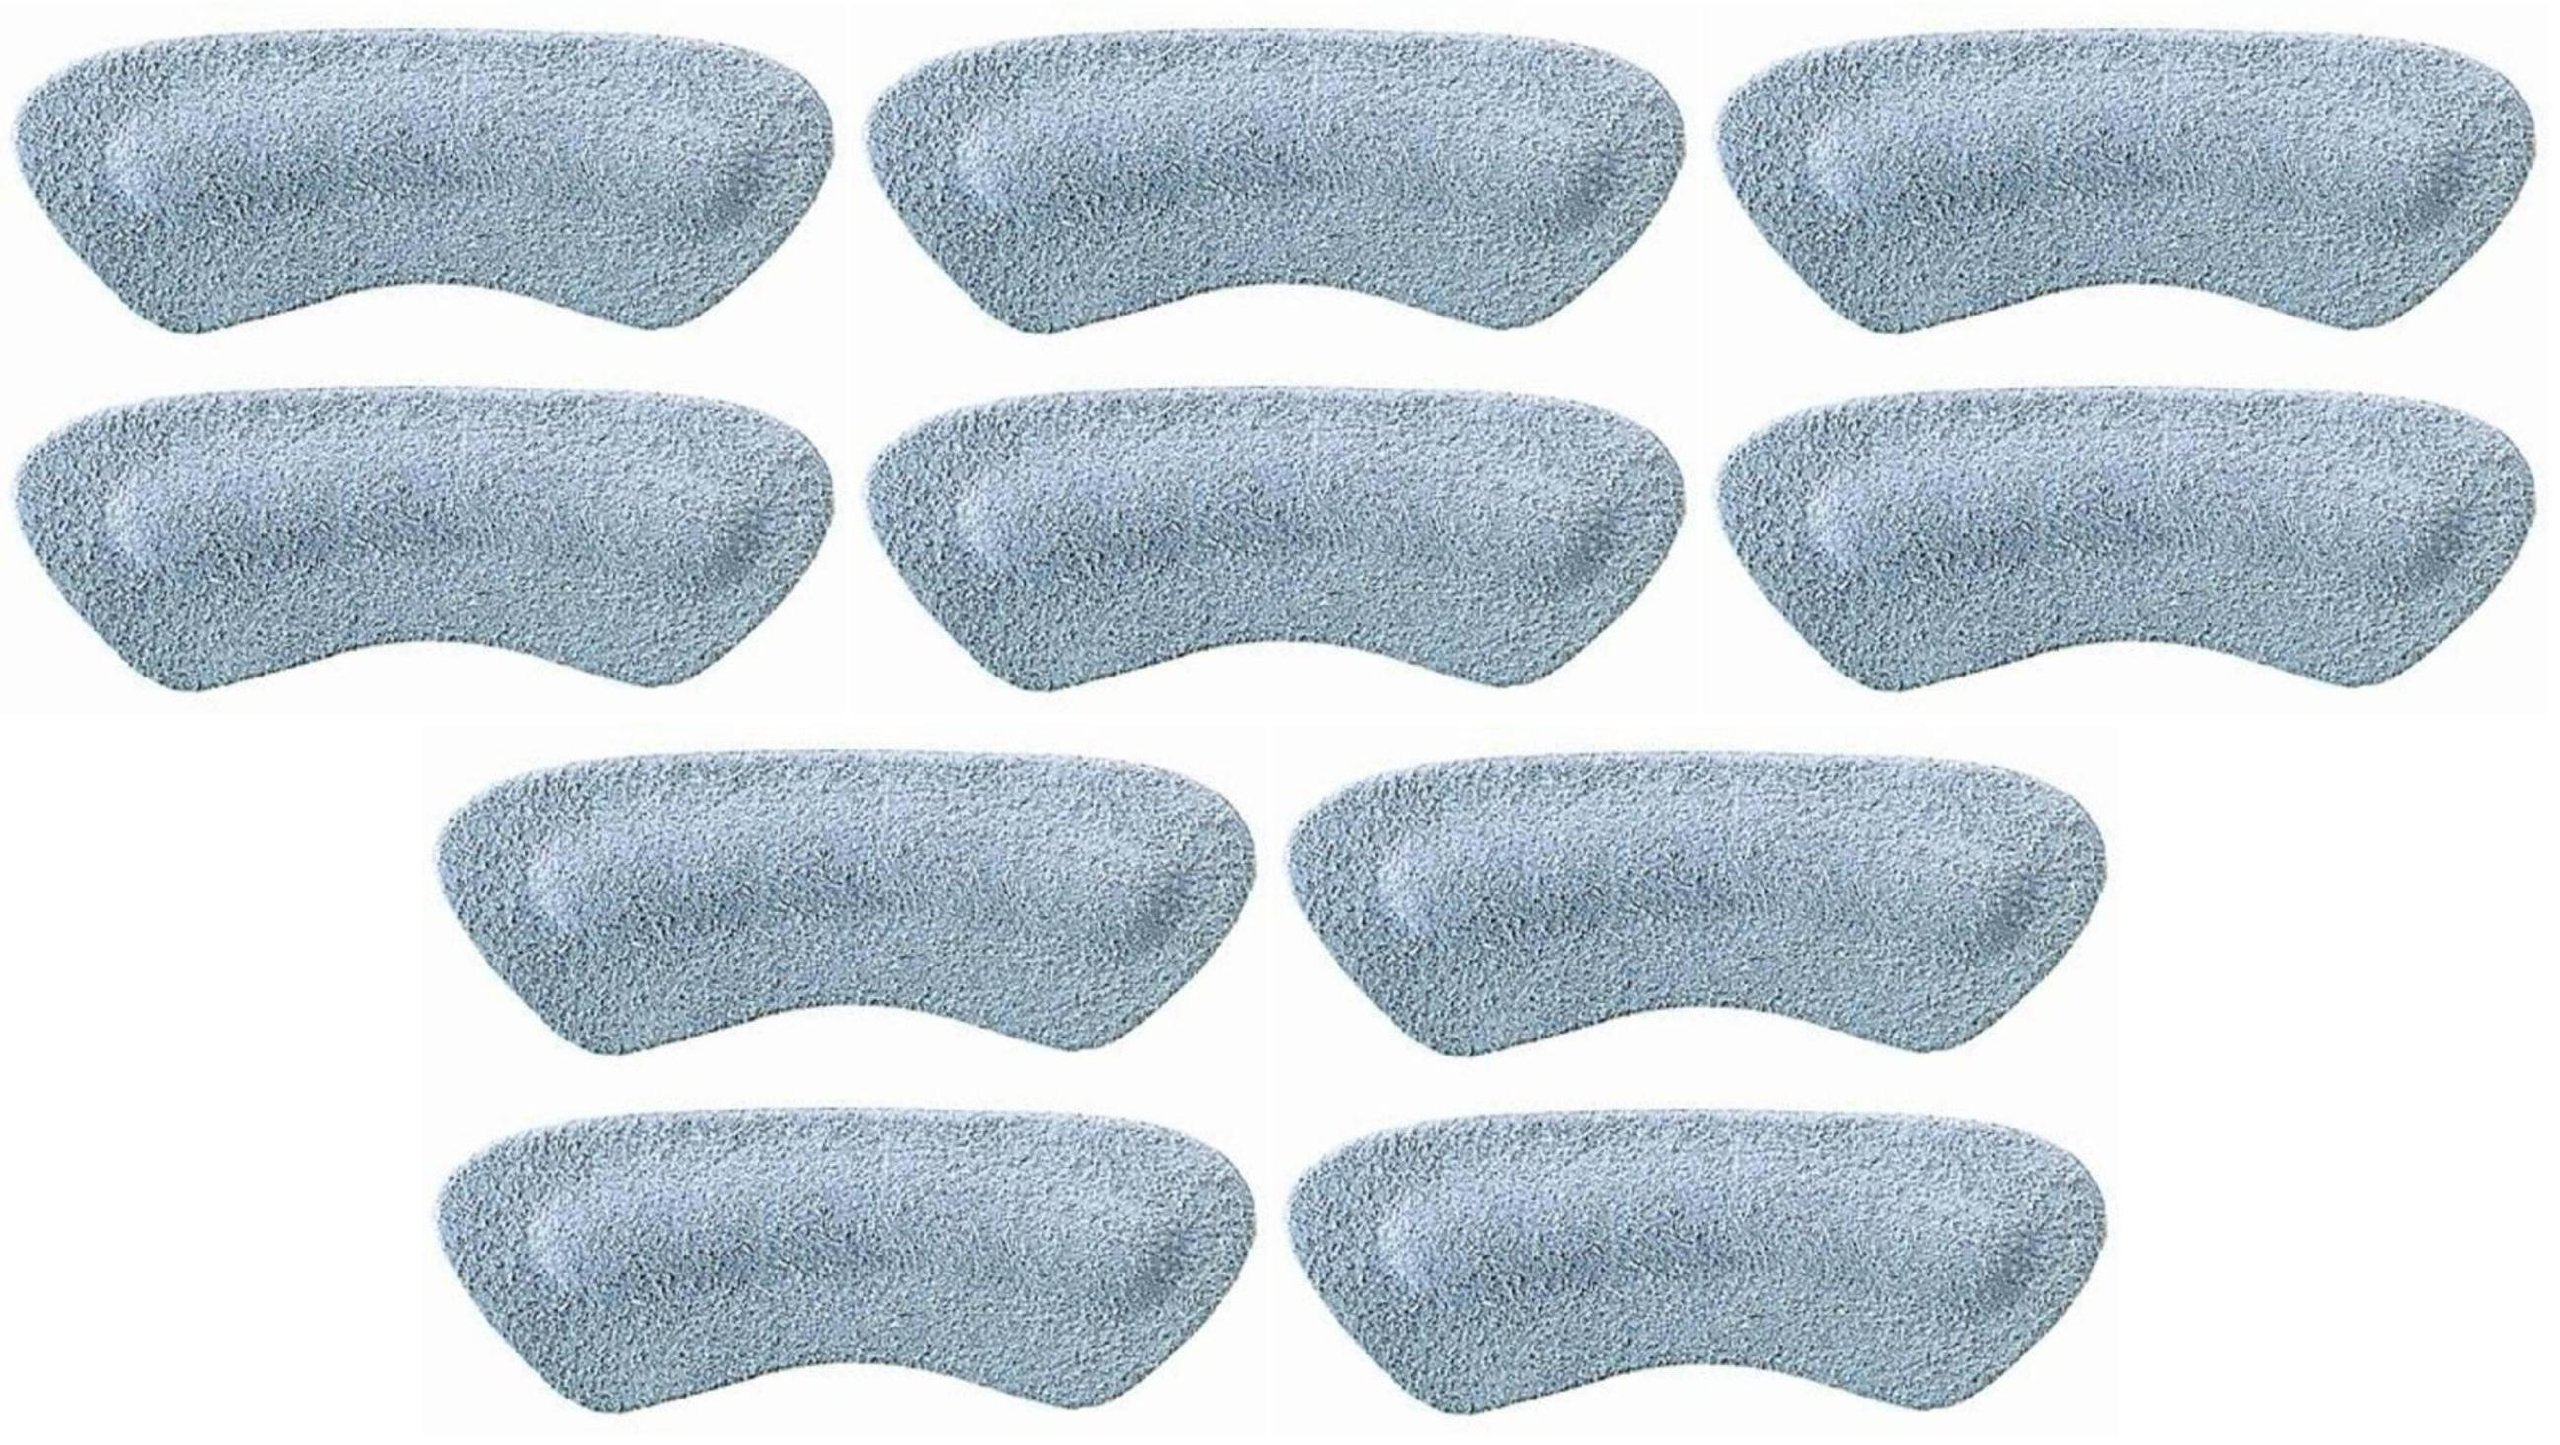 Pedag Stop Padded Leather Heel Grips, Gray, Five Pair